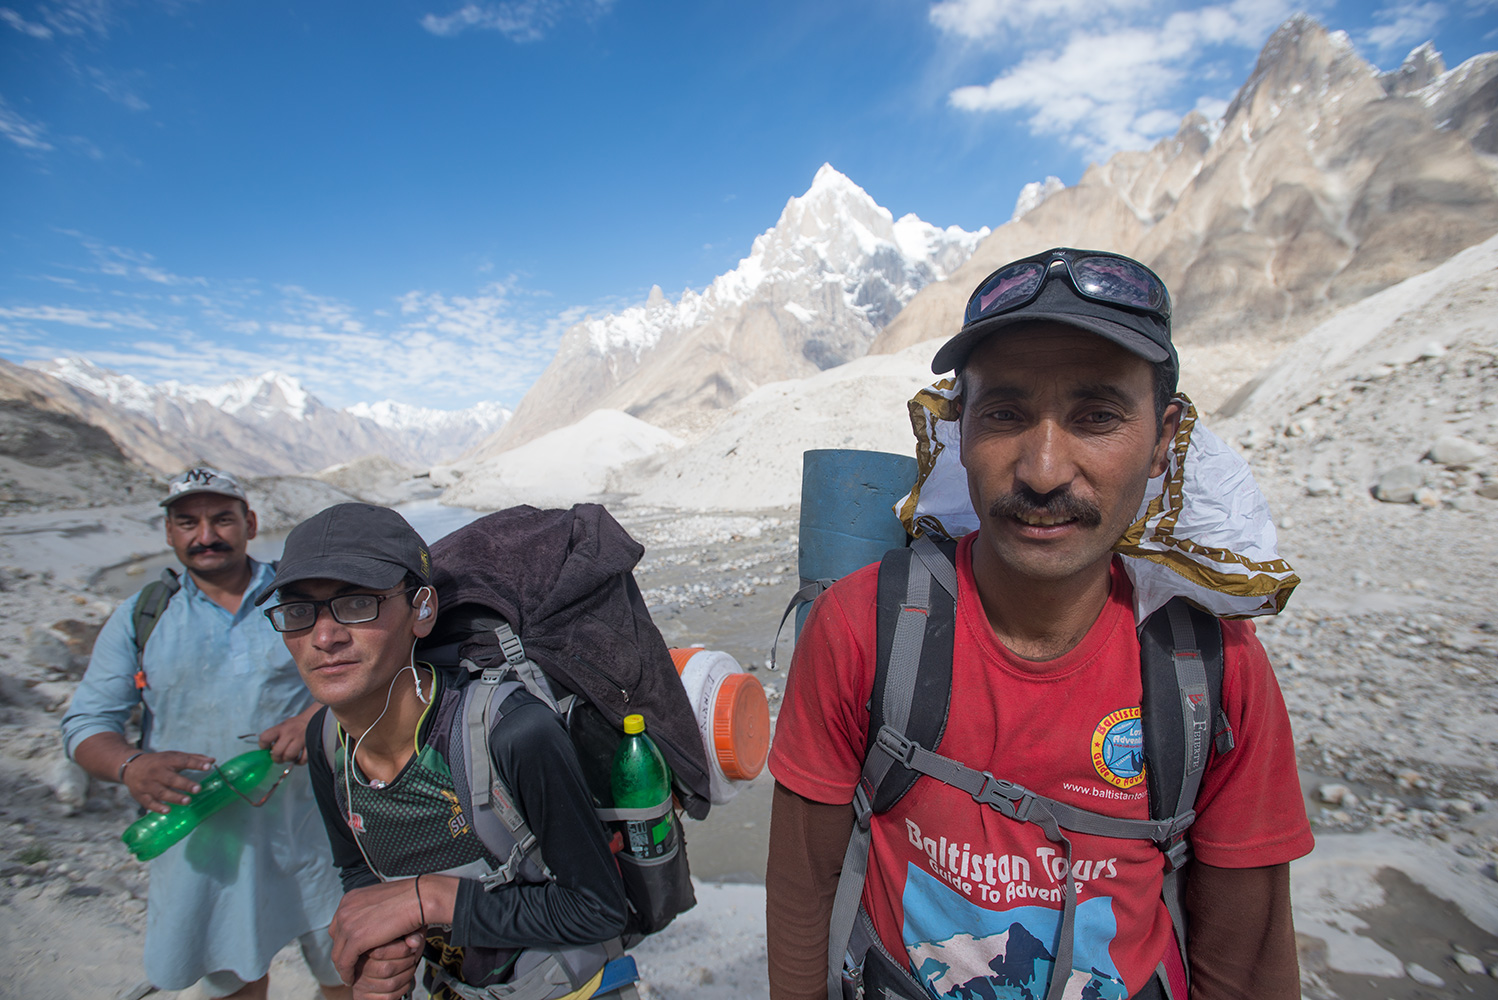 On the Baltoro below HobutseBaltistan Tours was founded concurrently with The Karakoram Experience. Mohammed Iqbal from Khaplu was the instigator, and today it is capably run by his son Zafar. I owe them all a huge debt of thanks for thirty years of friendship and service. Masha'Allah!